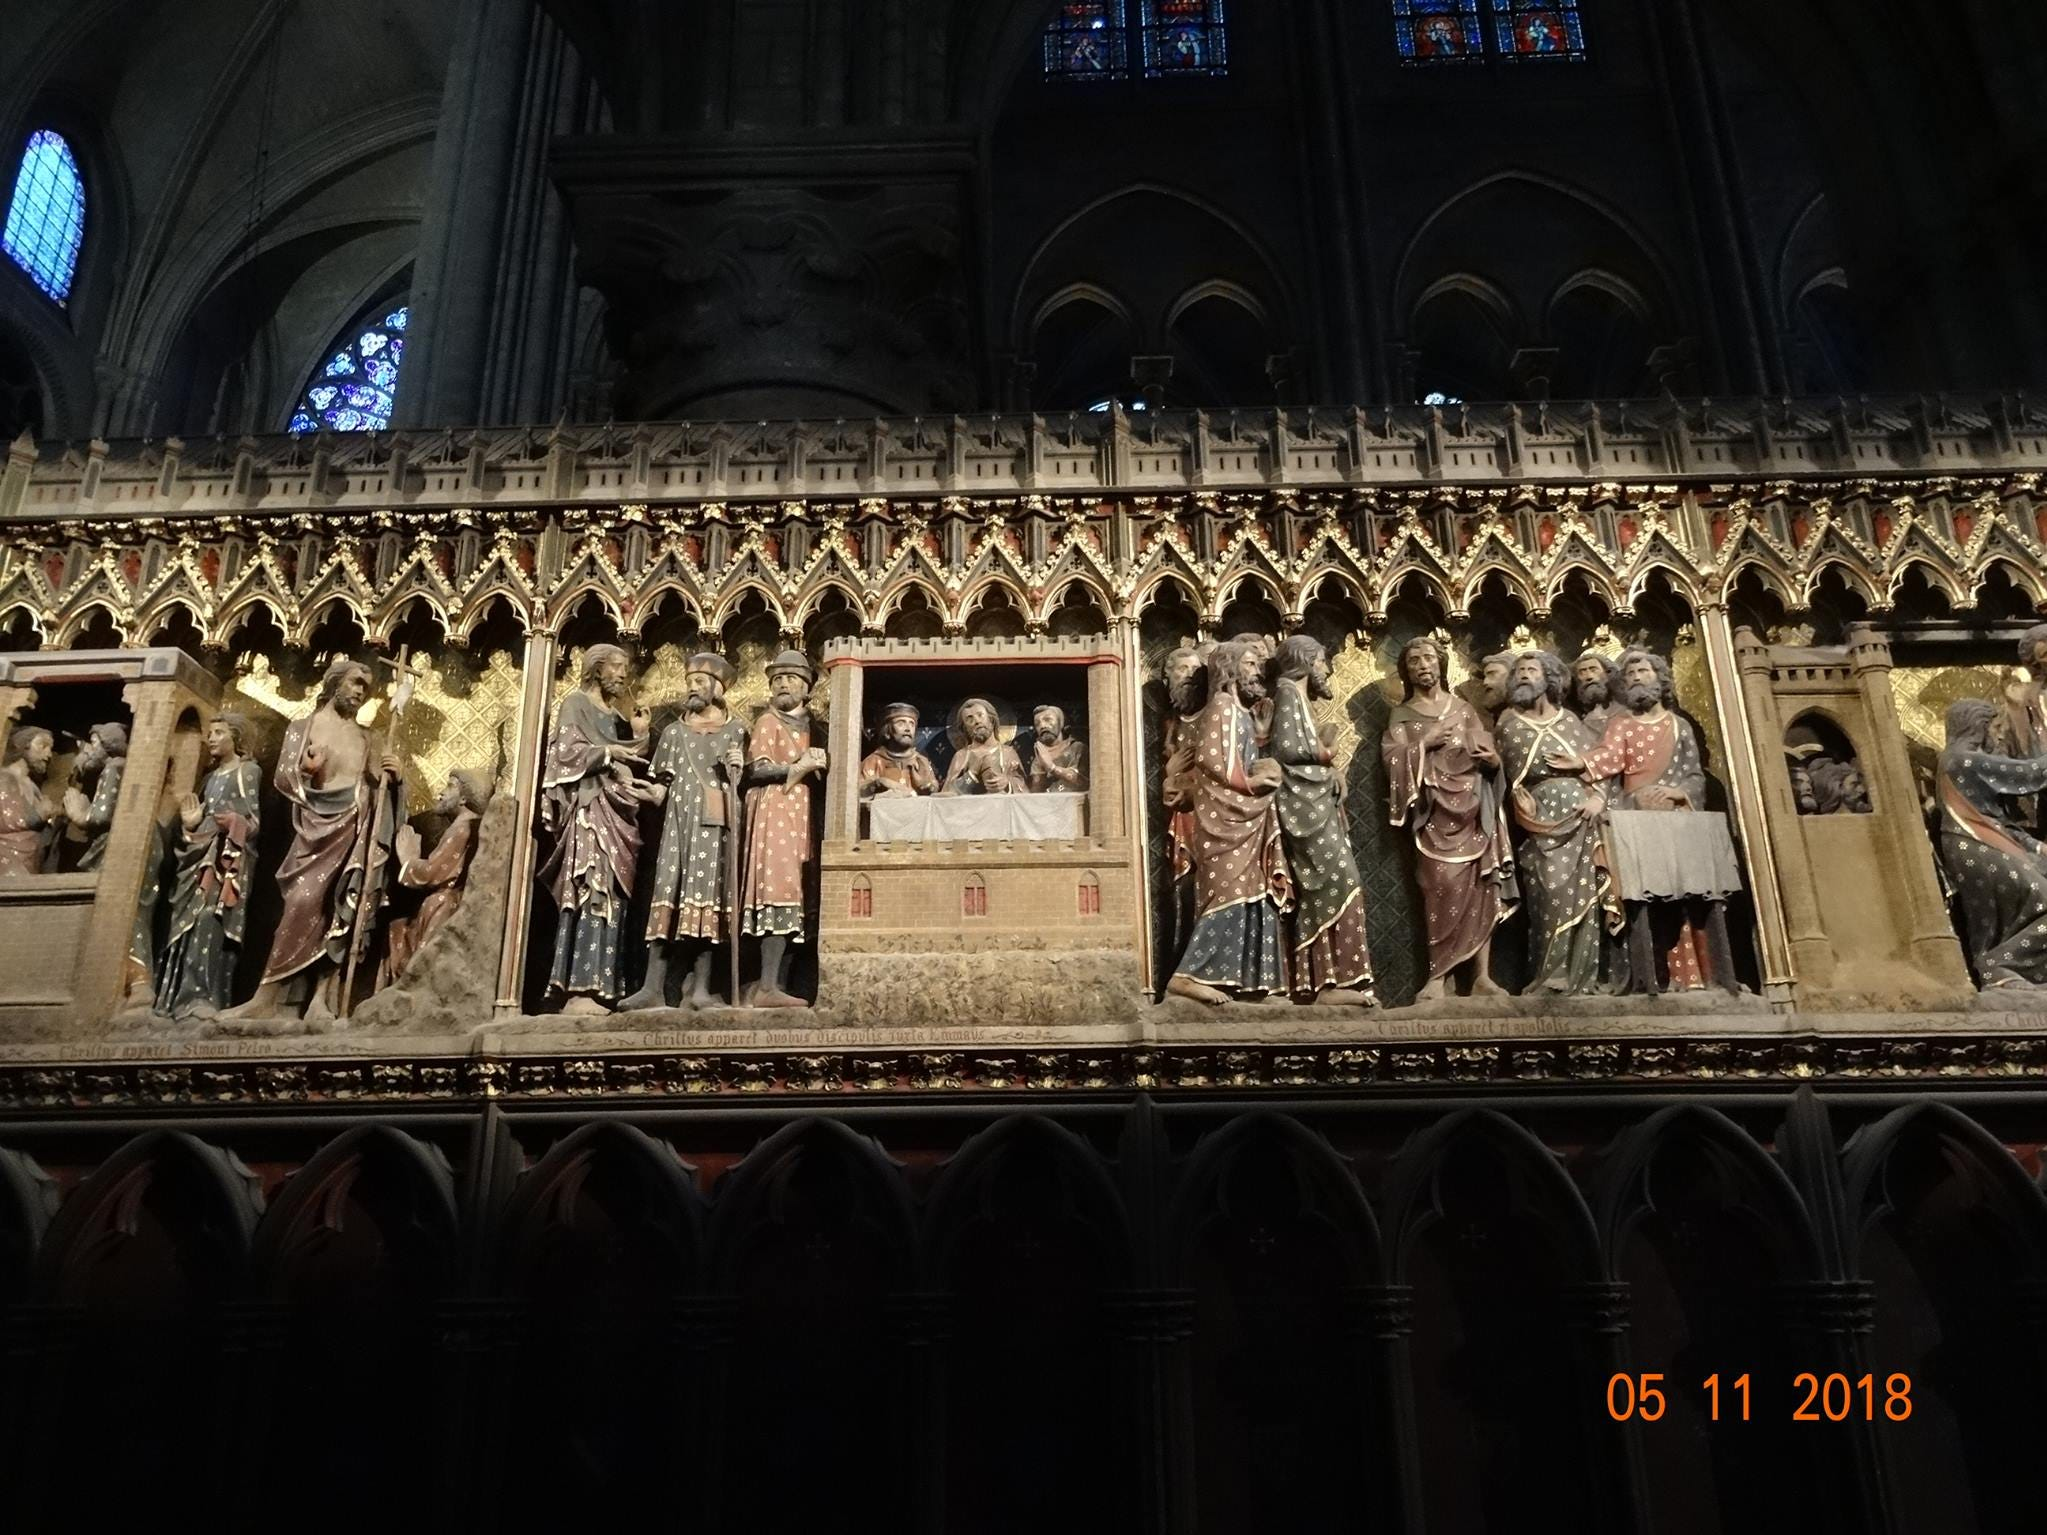 These are some we took inside Notre Dame just last year.